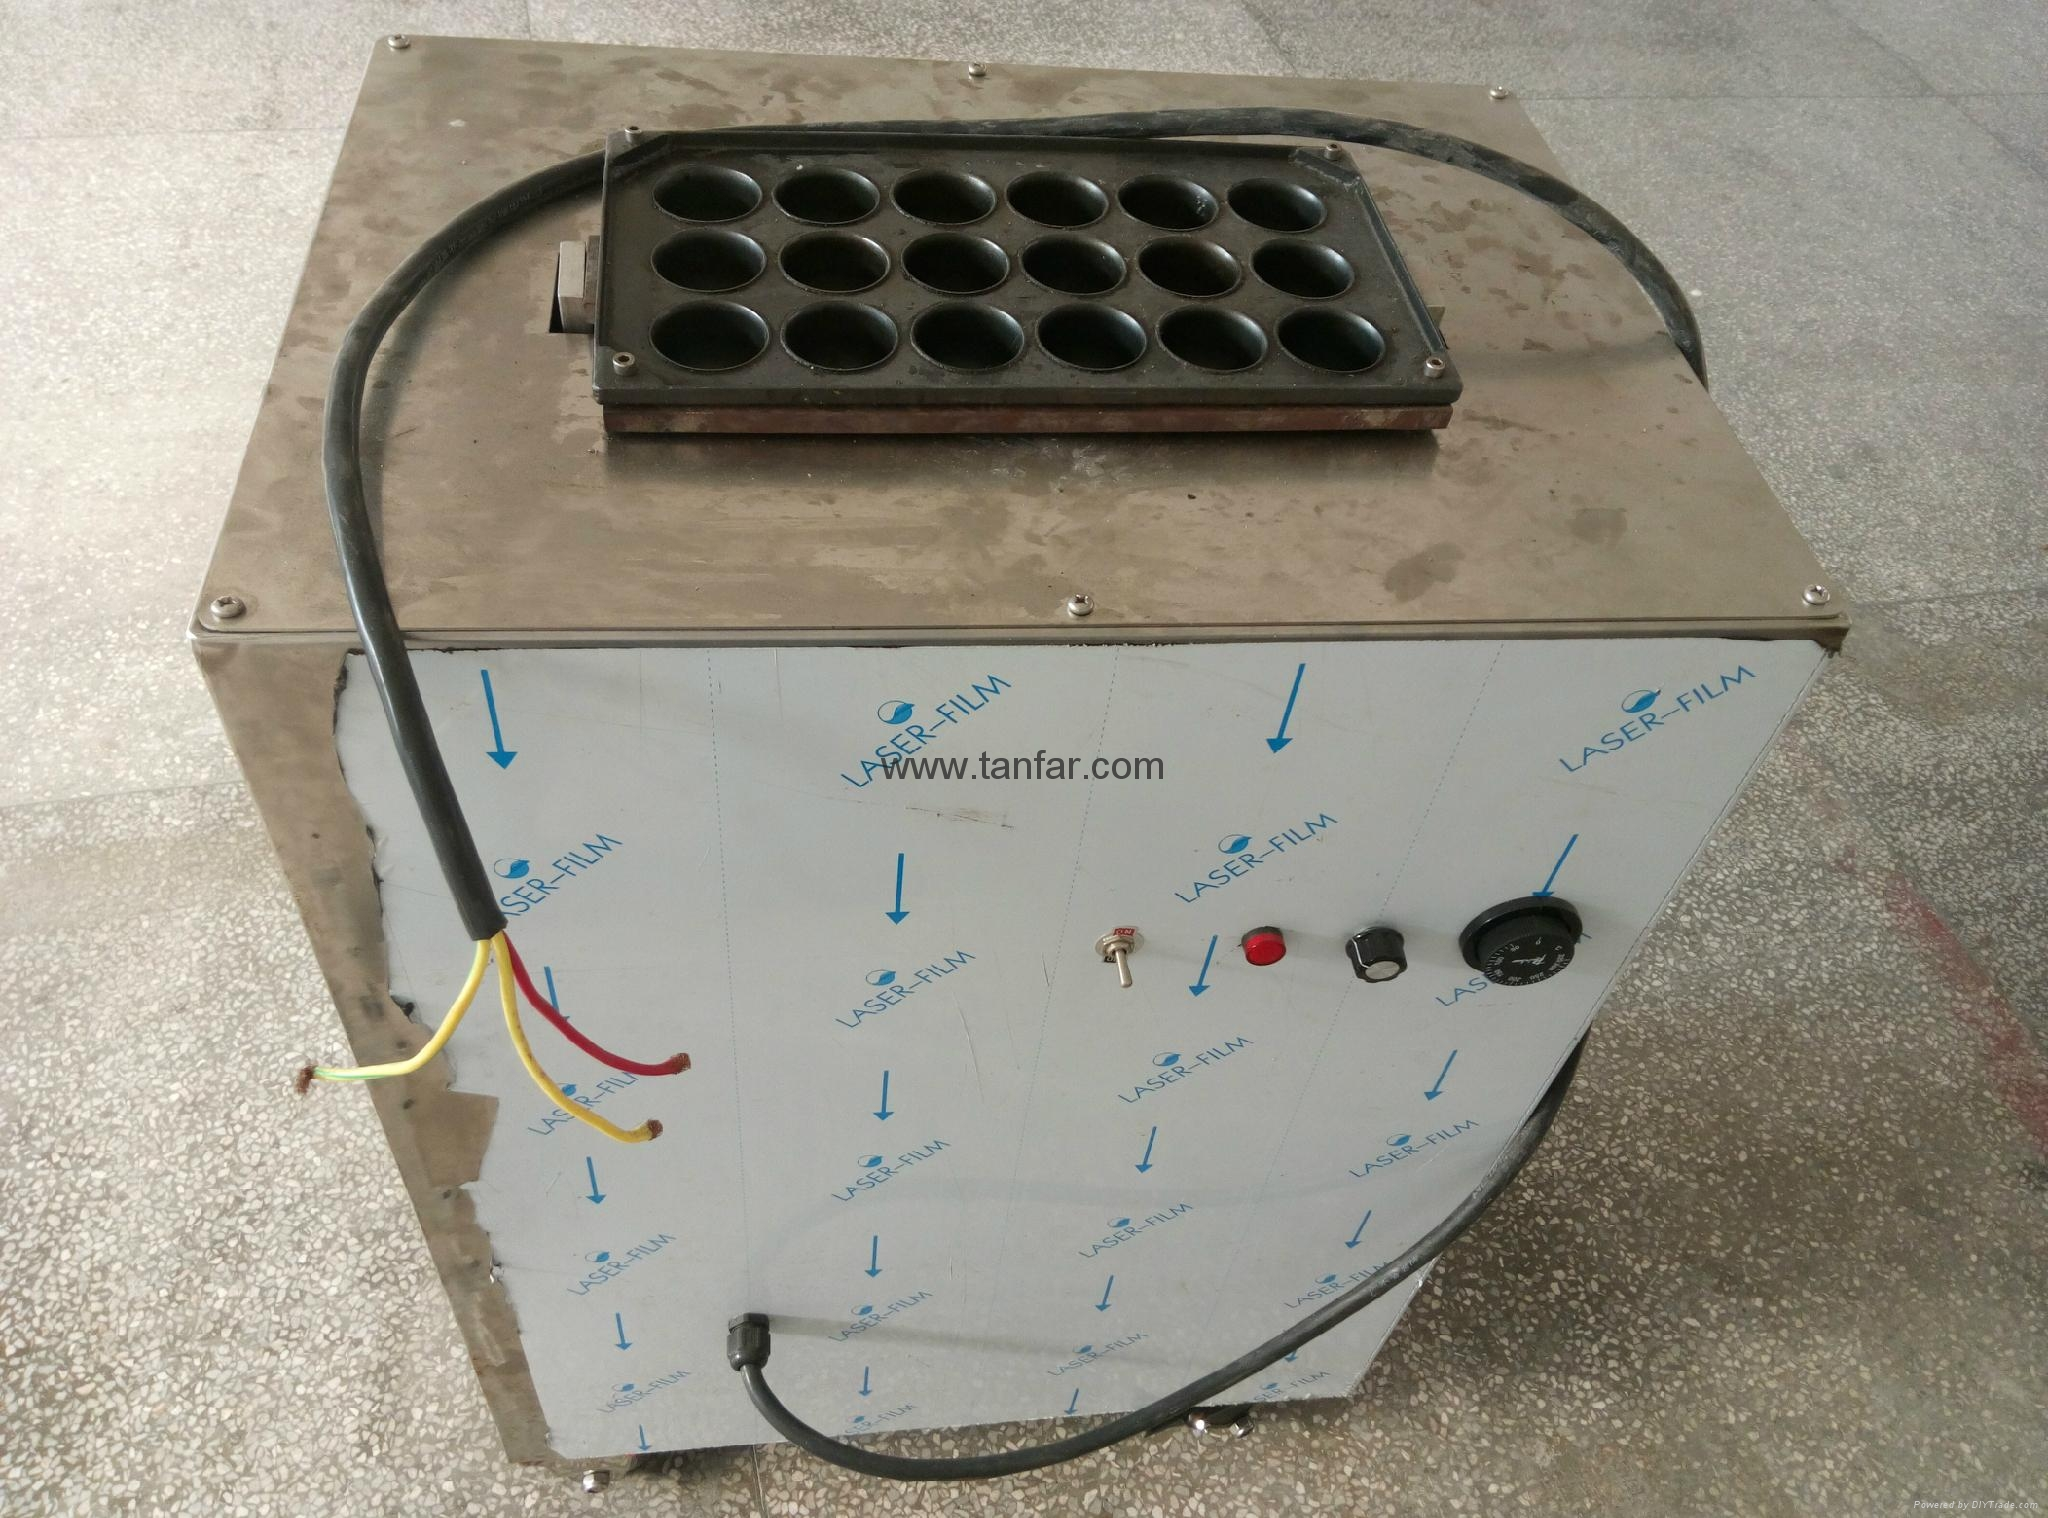 Tako Yaski Machine